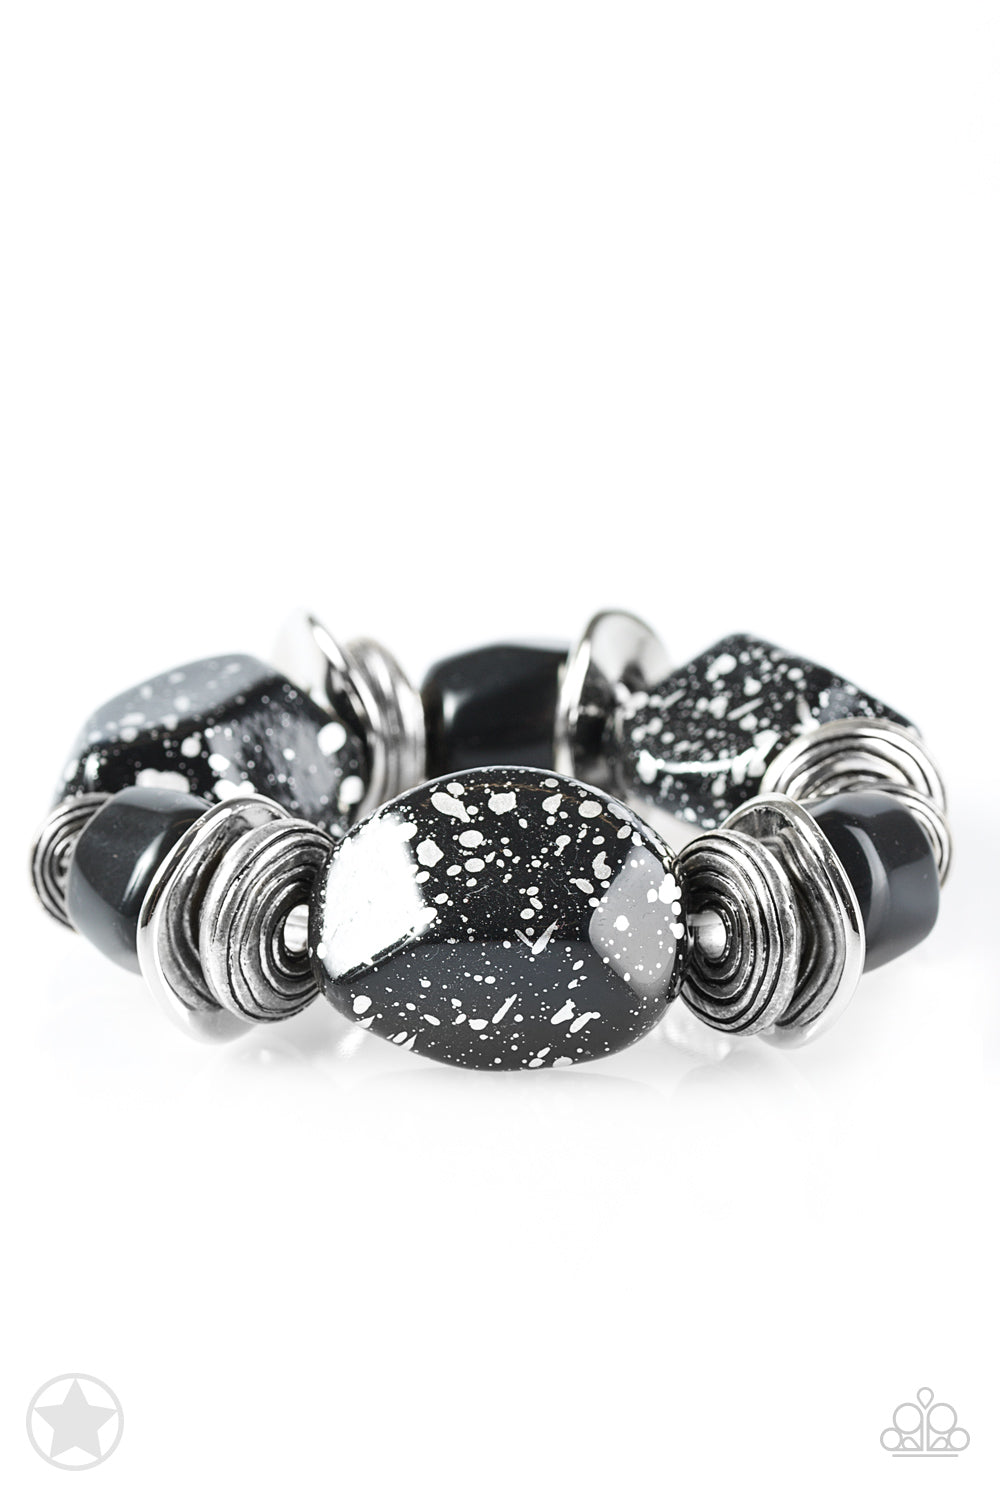 Glaze of Glory Black Bracelets Paparazzi Accessories - JewelTonez Jewelry